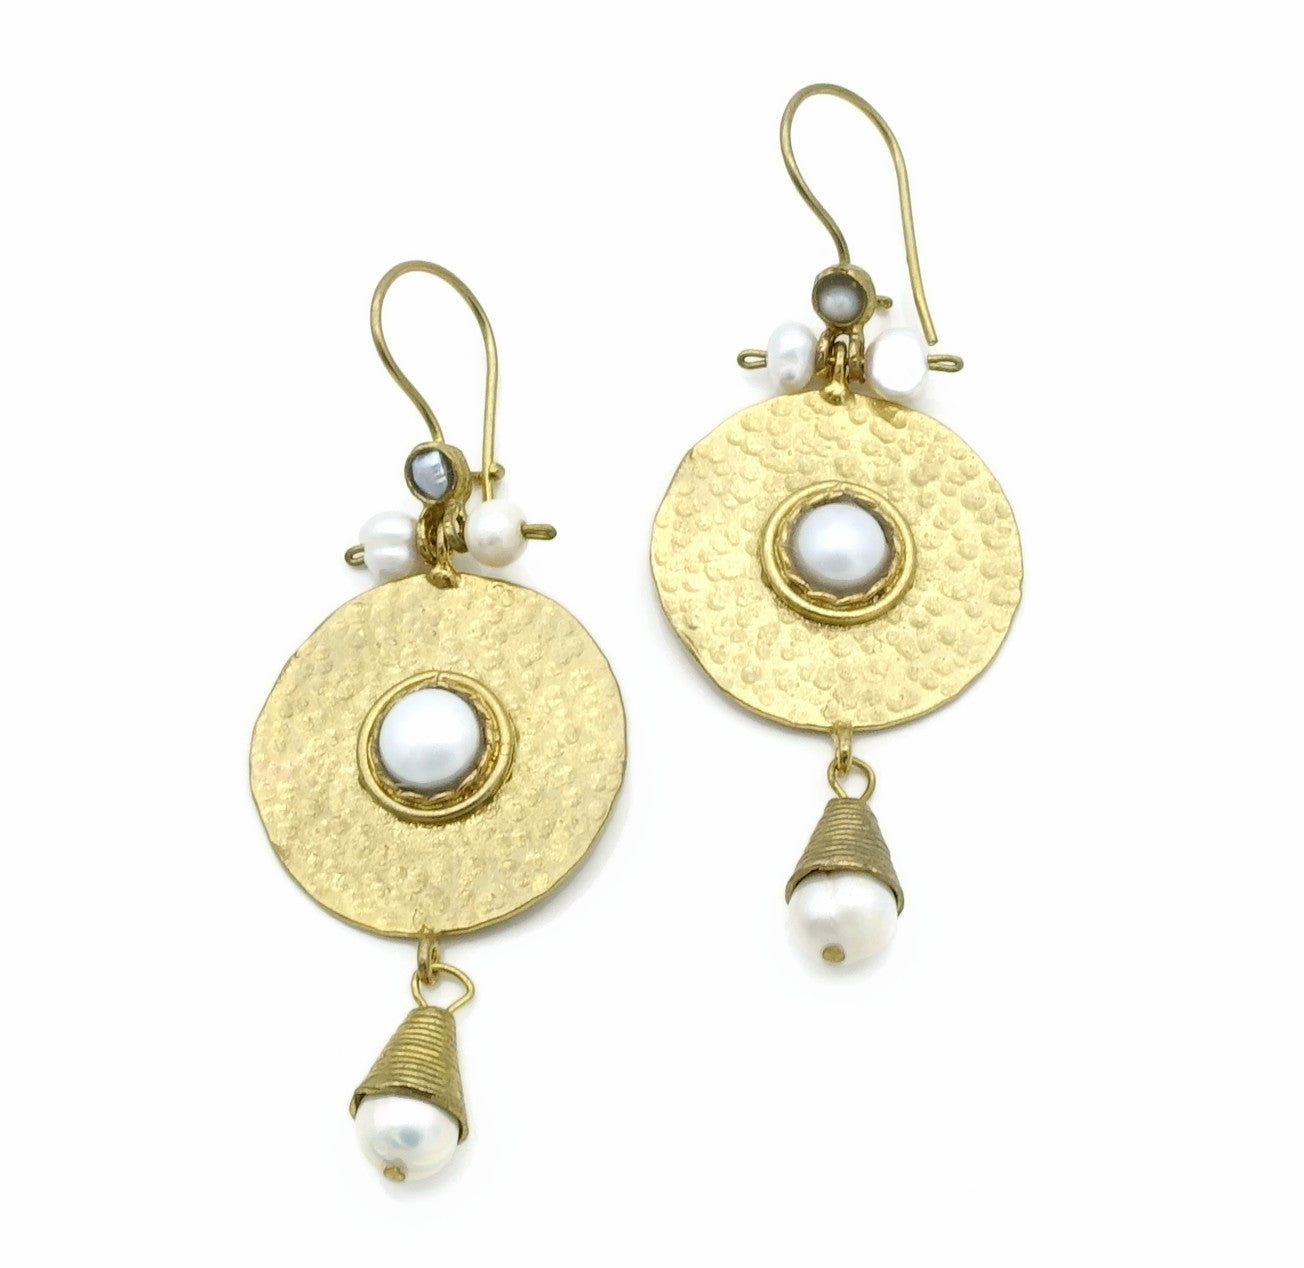 Aylas Pearl earrings - 21ct Gold plated semi precious gemstone - Handmade